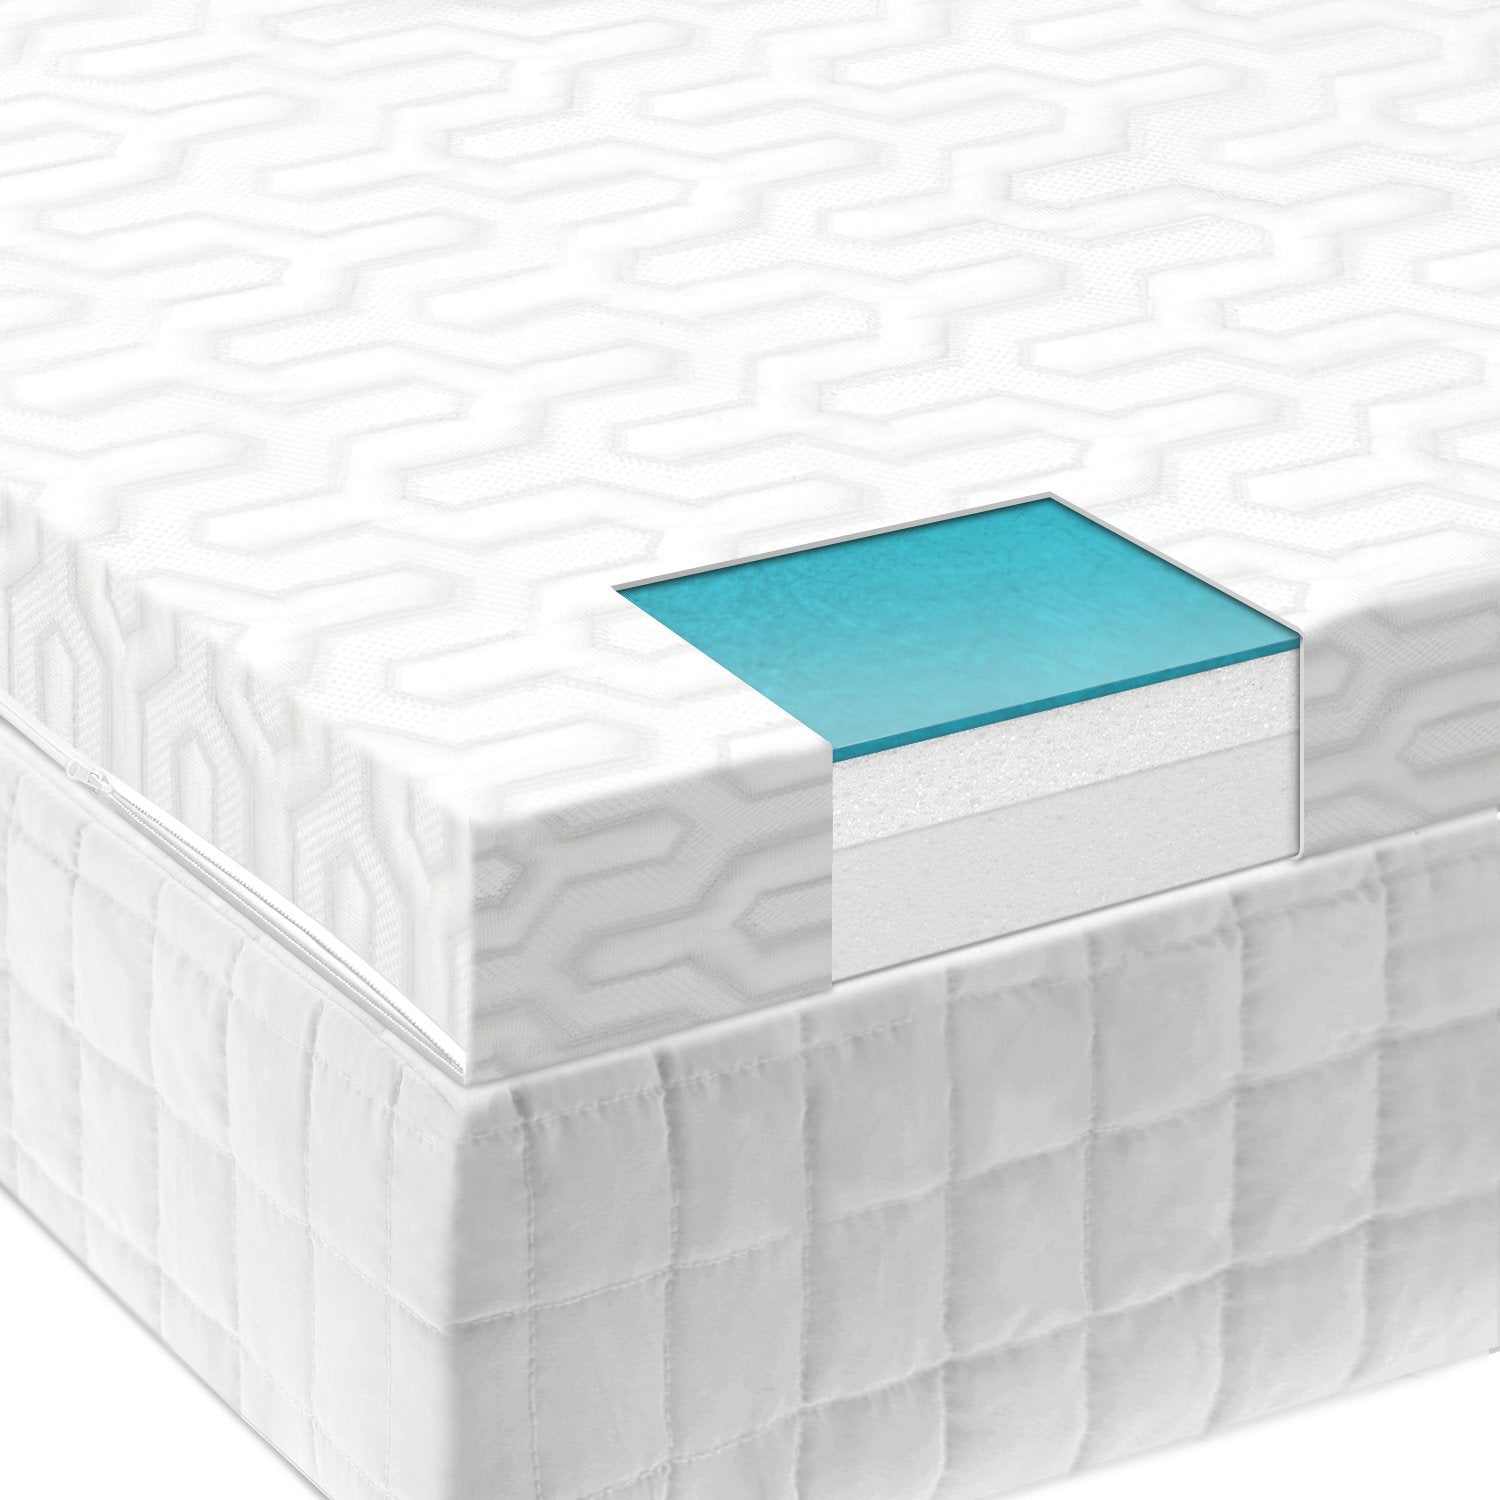 mattress colour toppers move double natural contours stretch ikea in your follows tromsdalen as bed gb mattresses body fabric the products en art standard topper you of